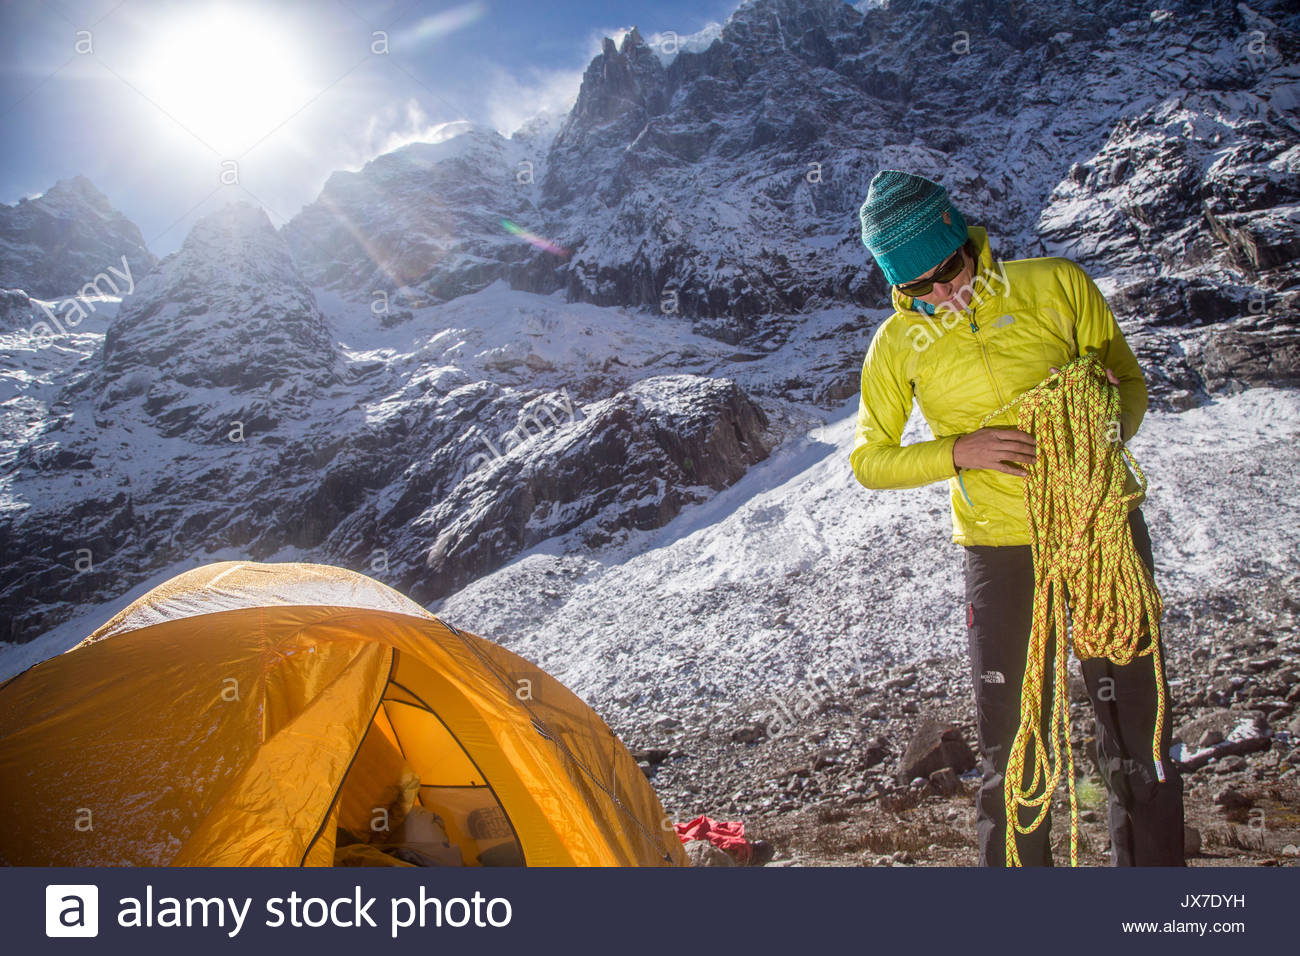 An expedition member checks ropes prior to setting out on a mountaineering expedition. - Stock Image